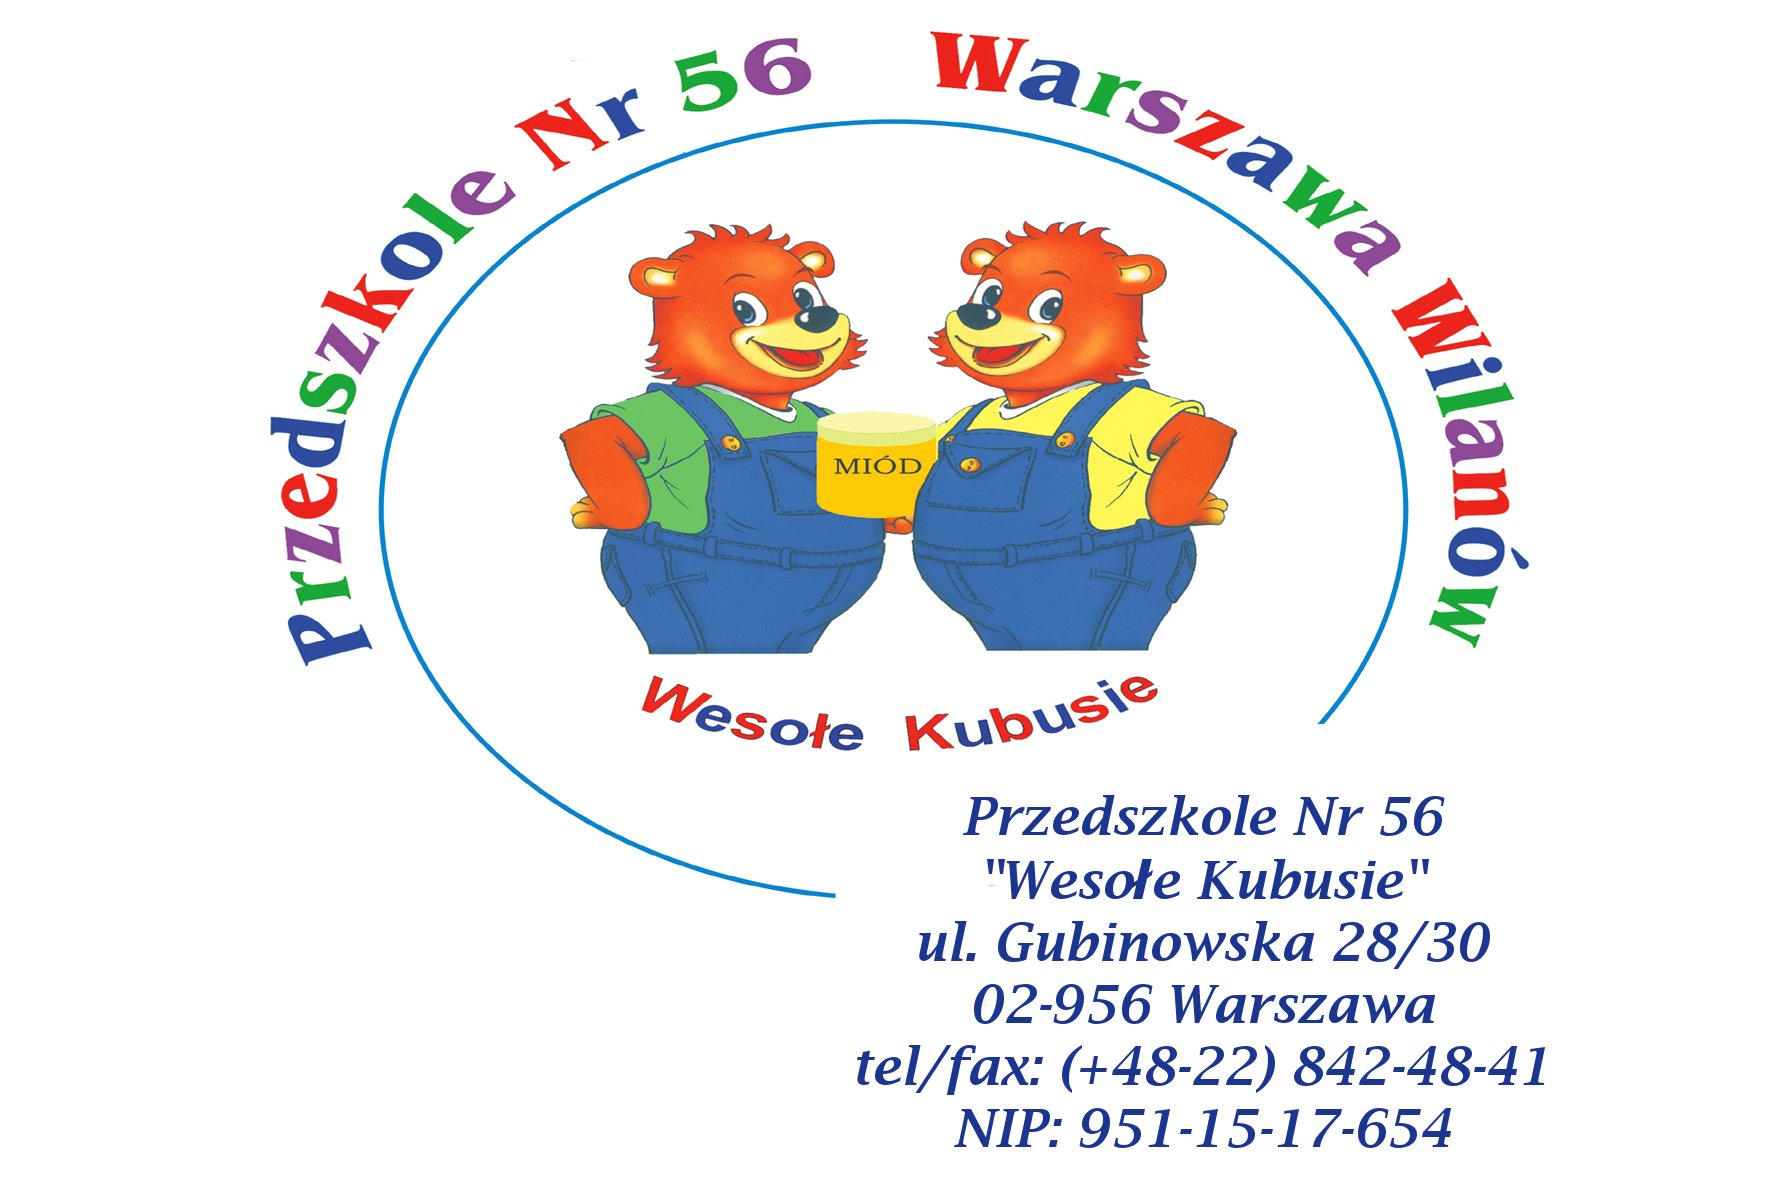 logo gubinowska do worda